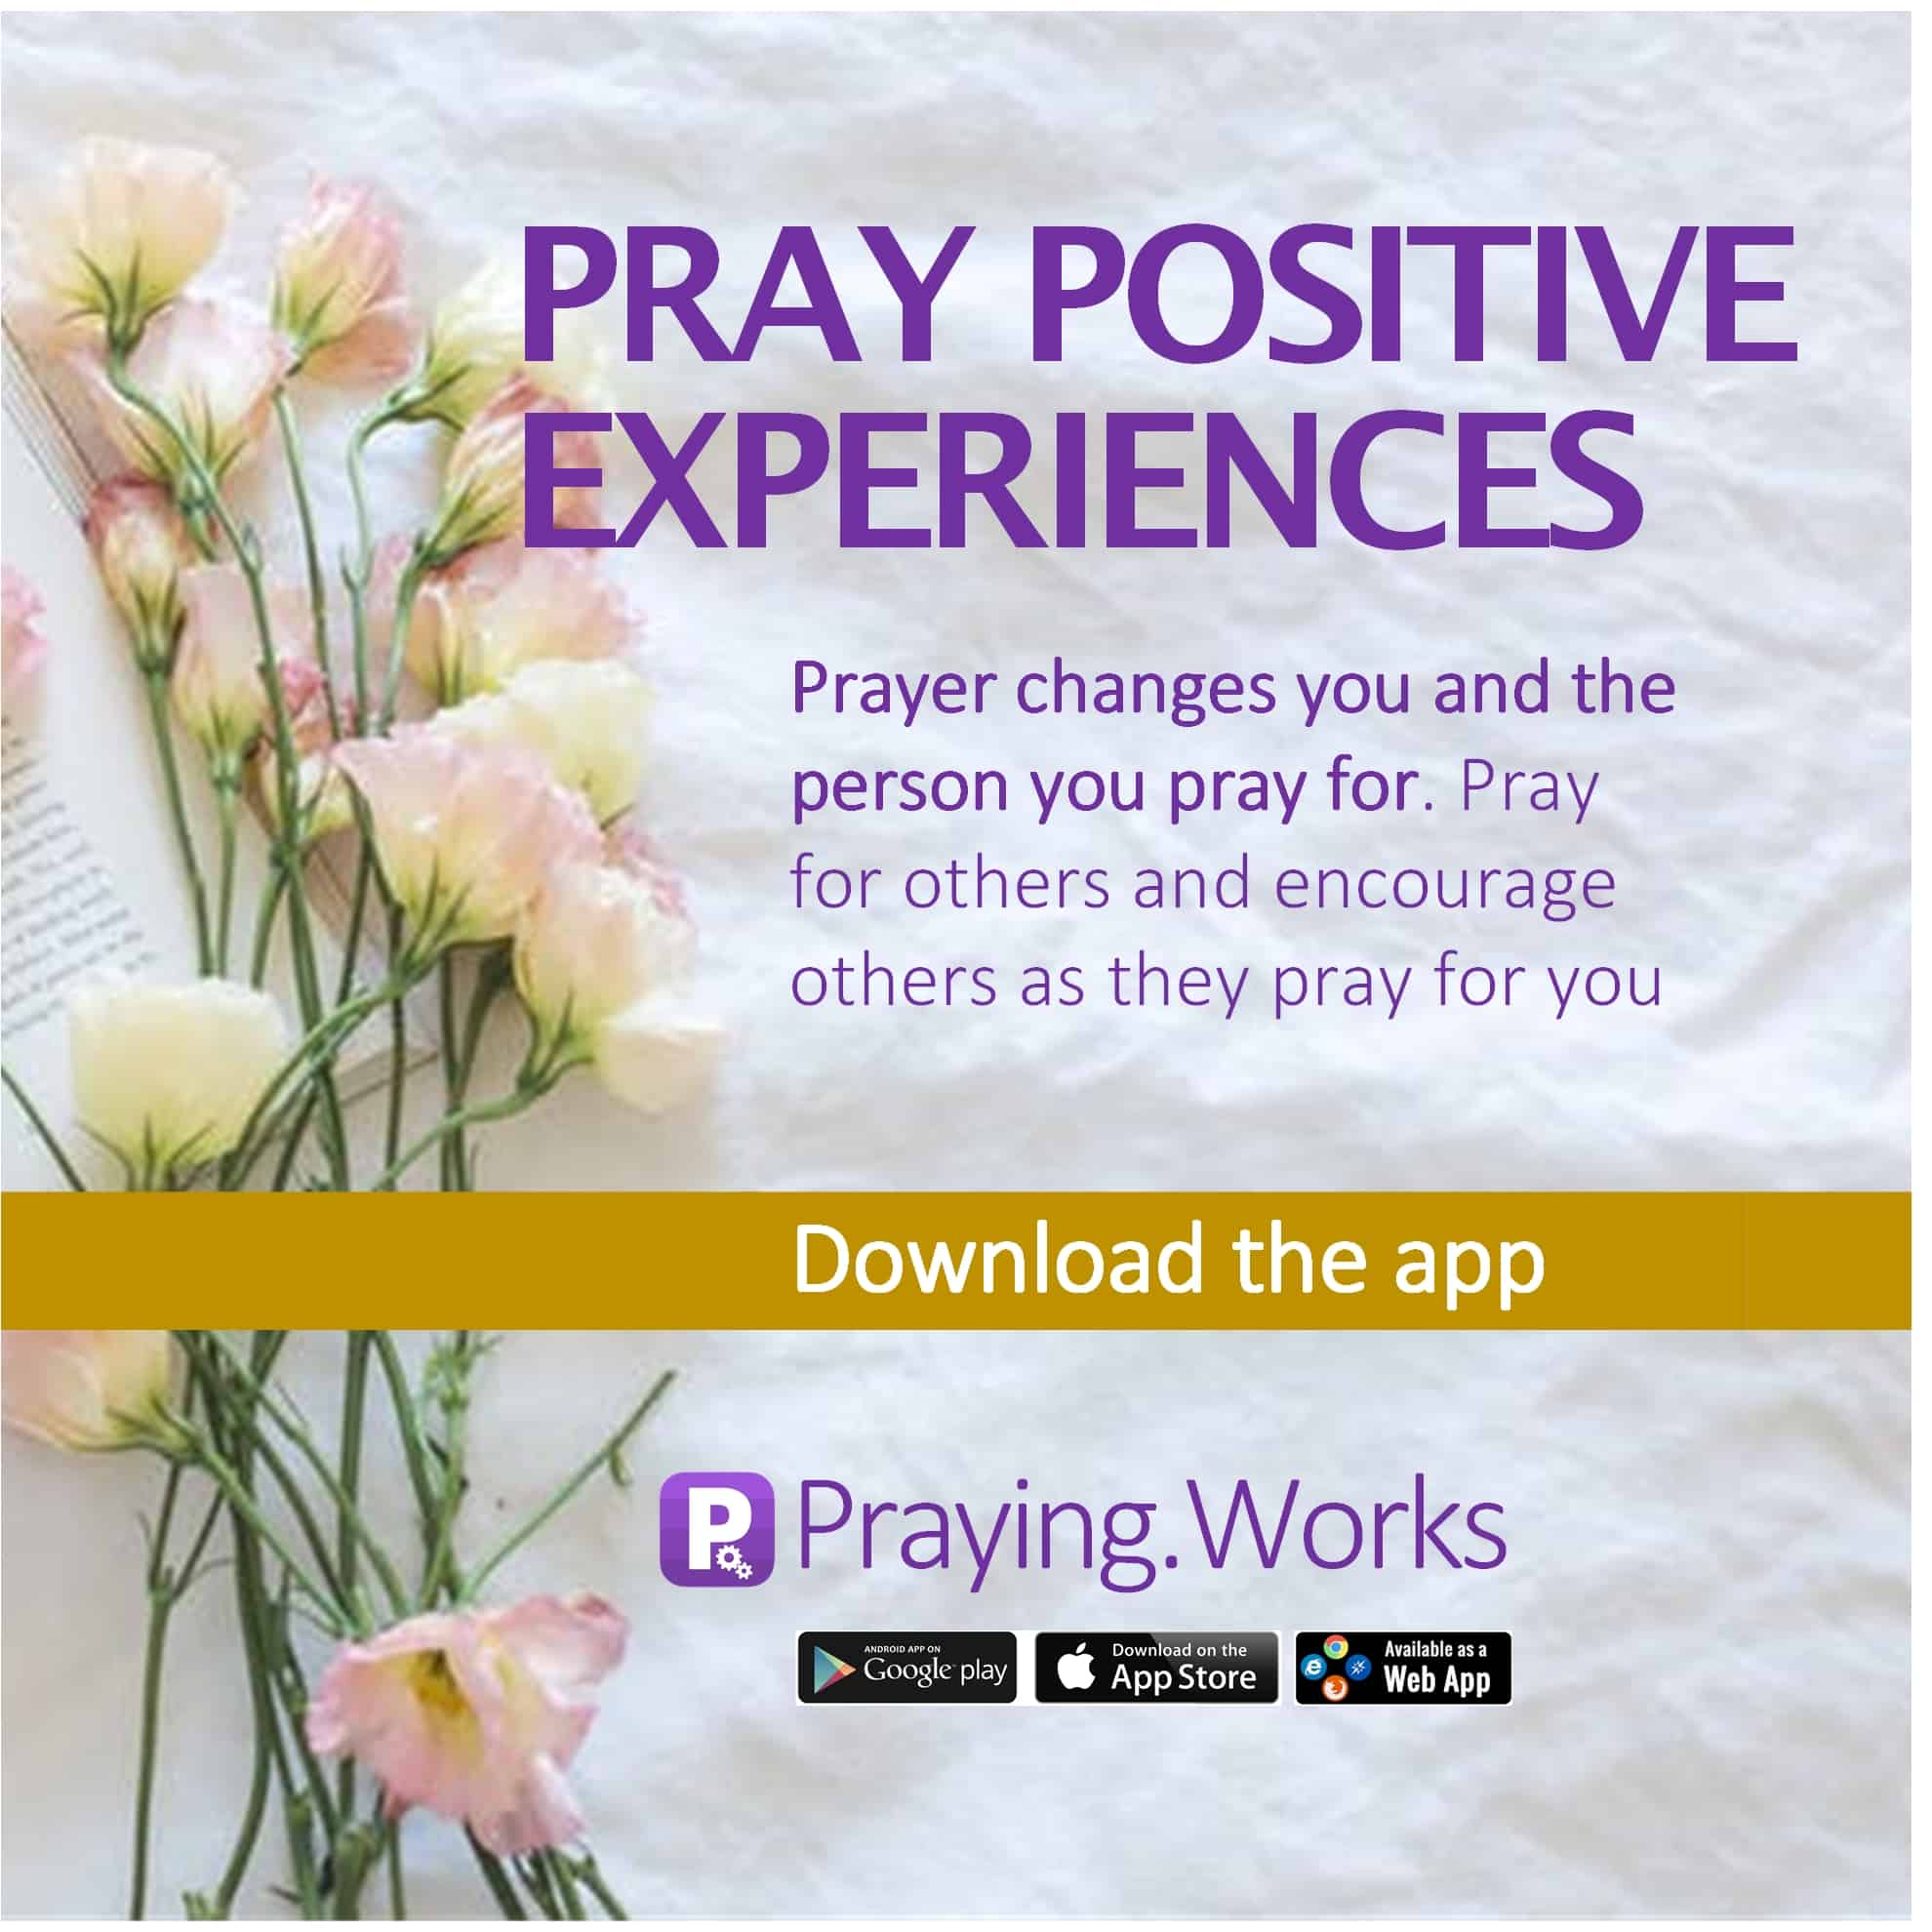 Pray Positive Experiences is the Best Approach